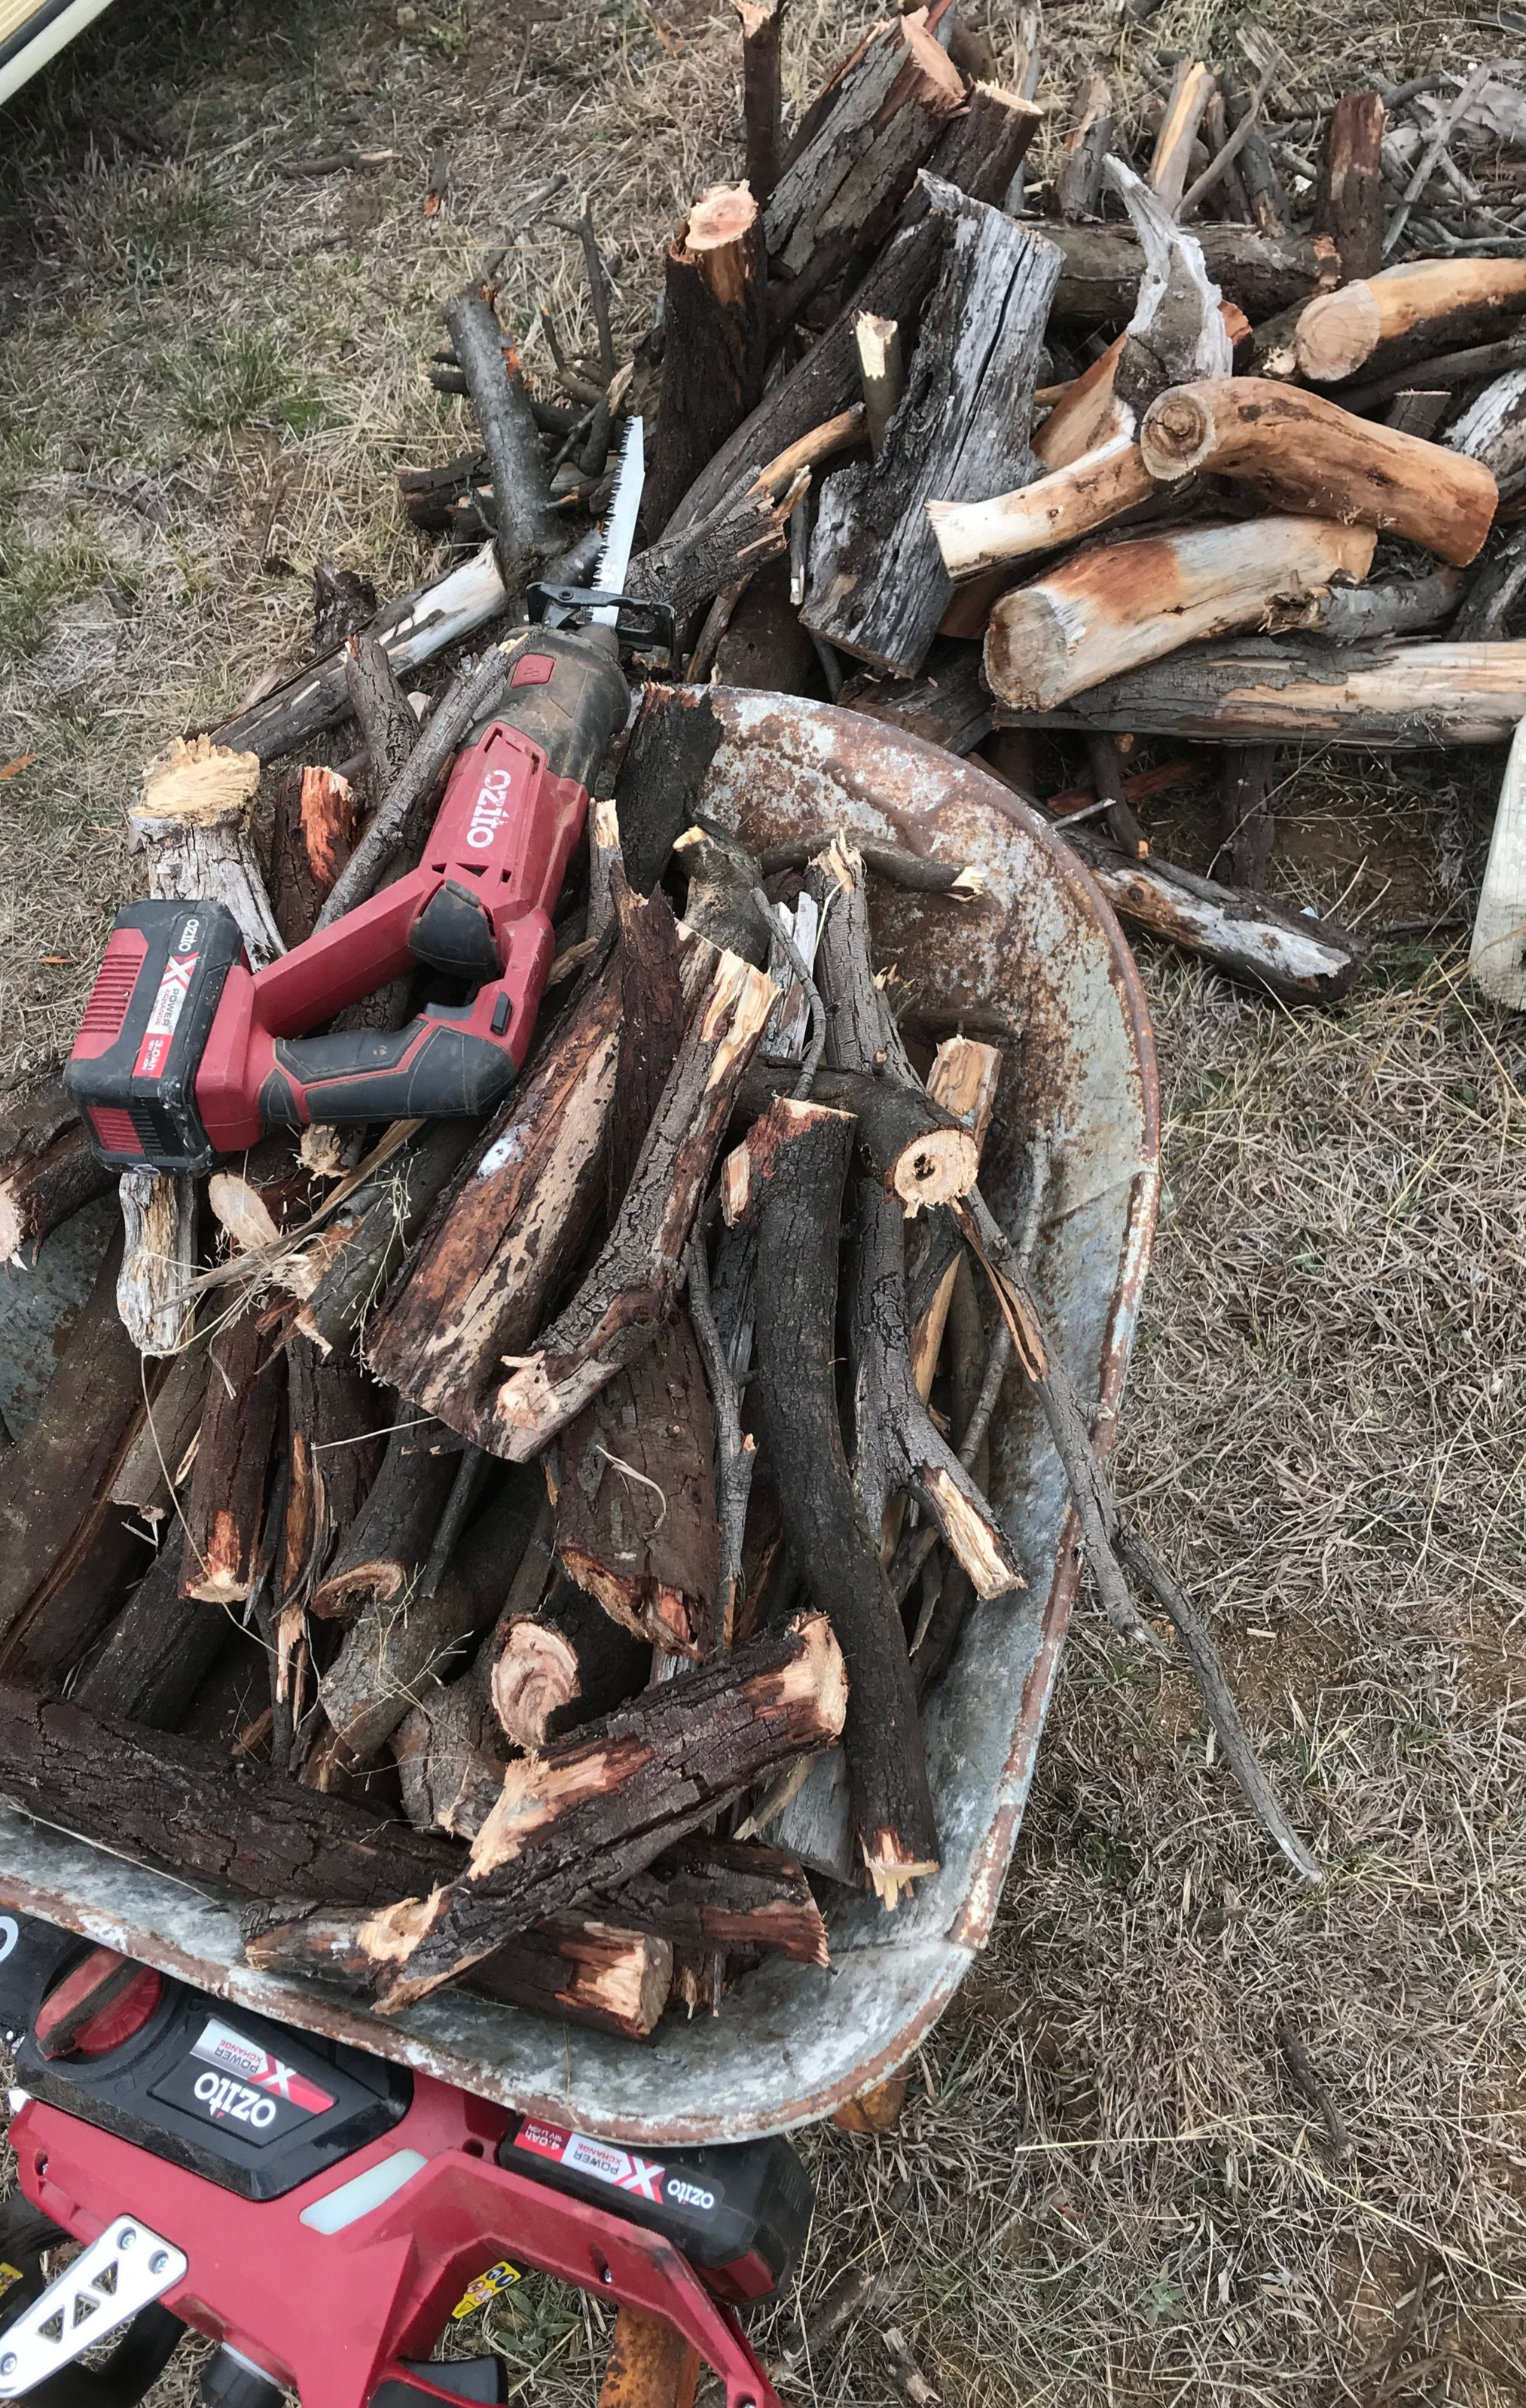 Just another variable to absorb in the problem solving process - firewood!